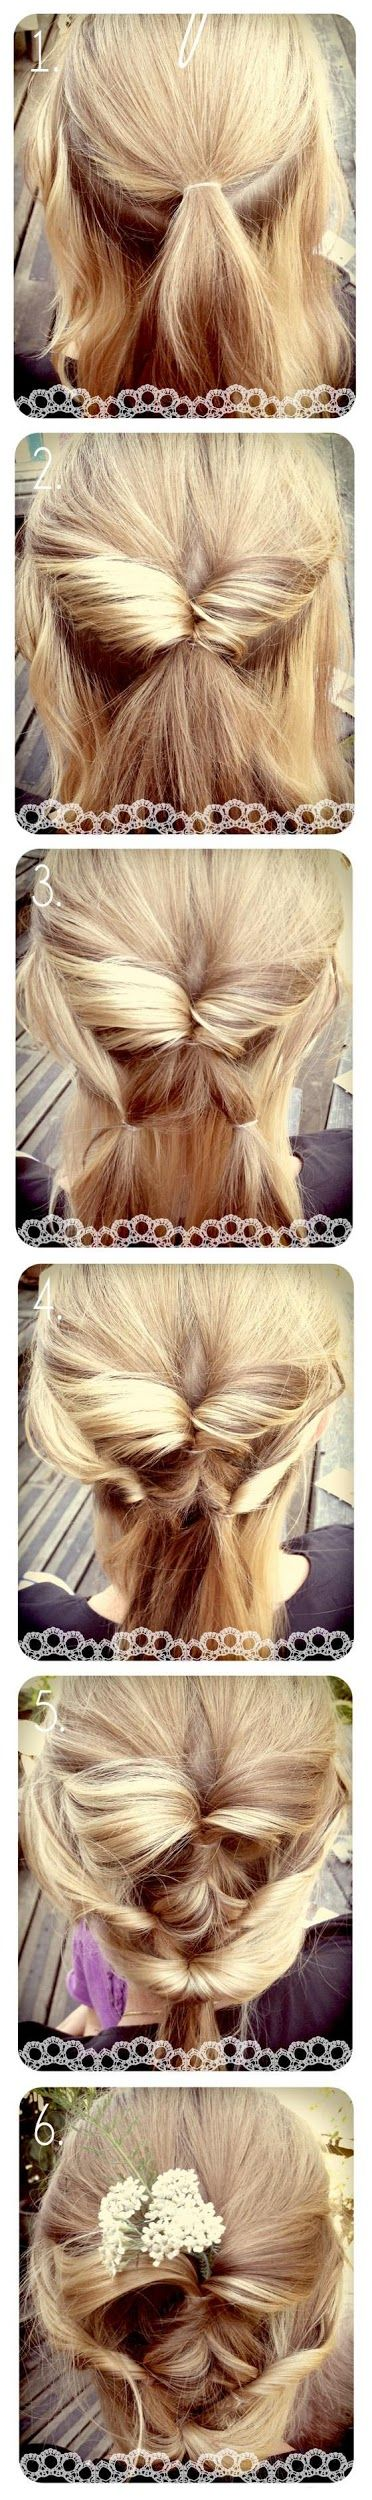 Make a Diy hairstyles tutorial.